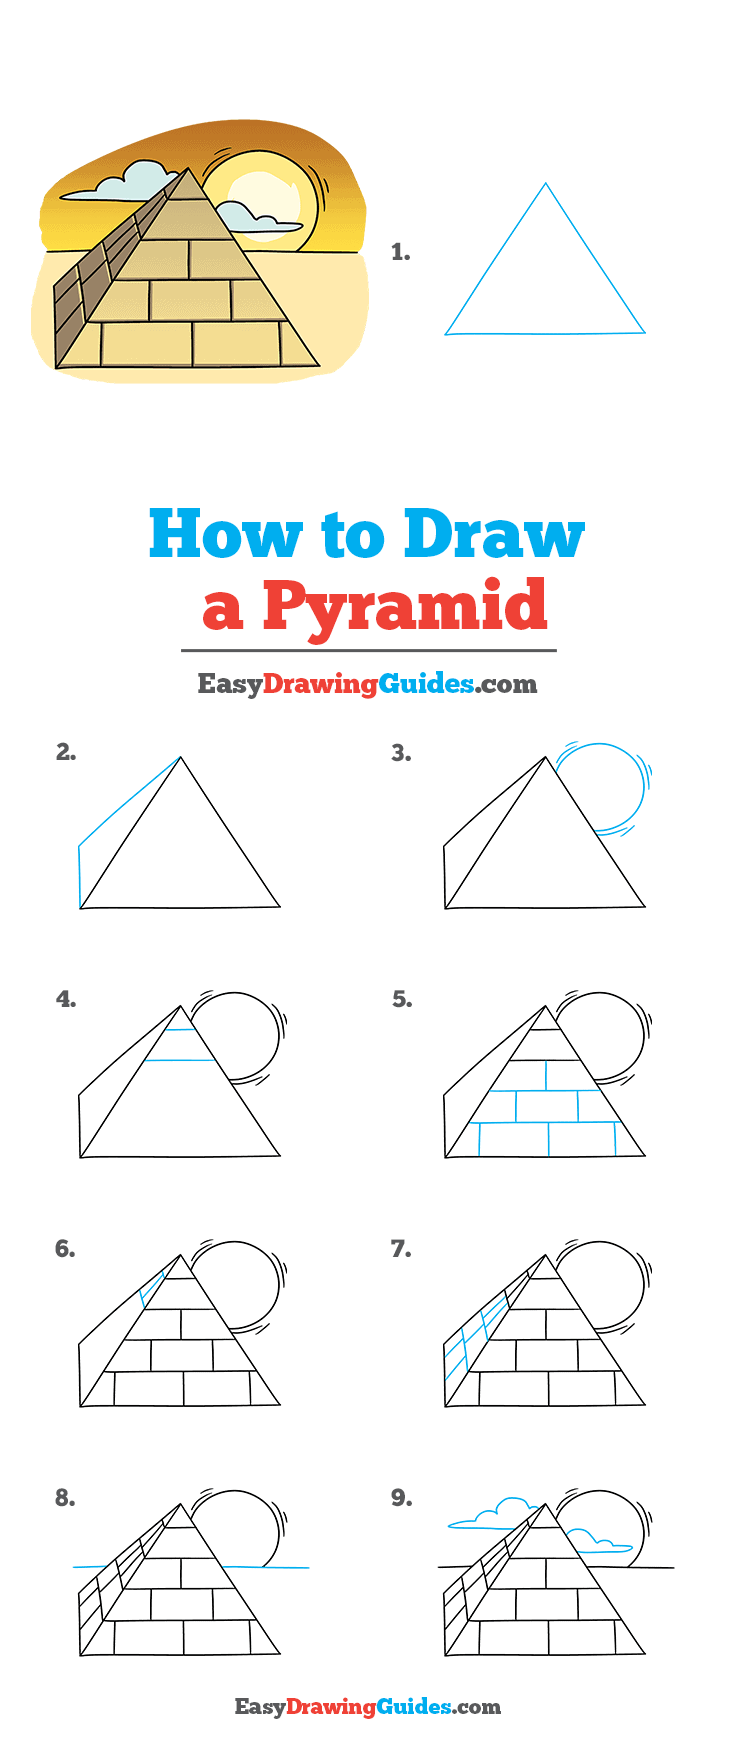 How to Draw Pyramid